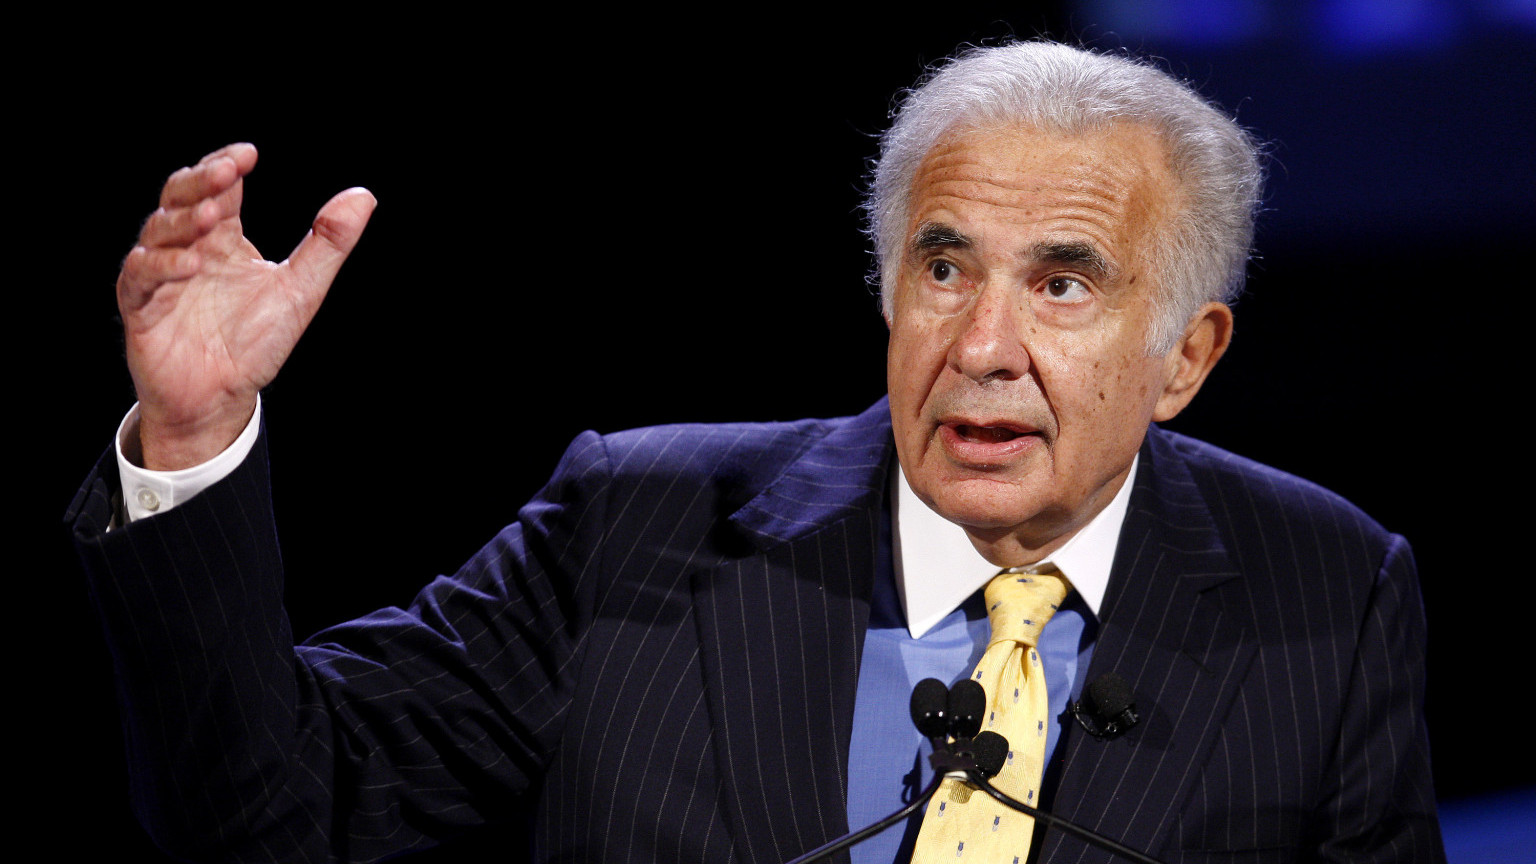 o-carl-icahn-apple-facebook-e1390926618285.jpg